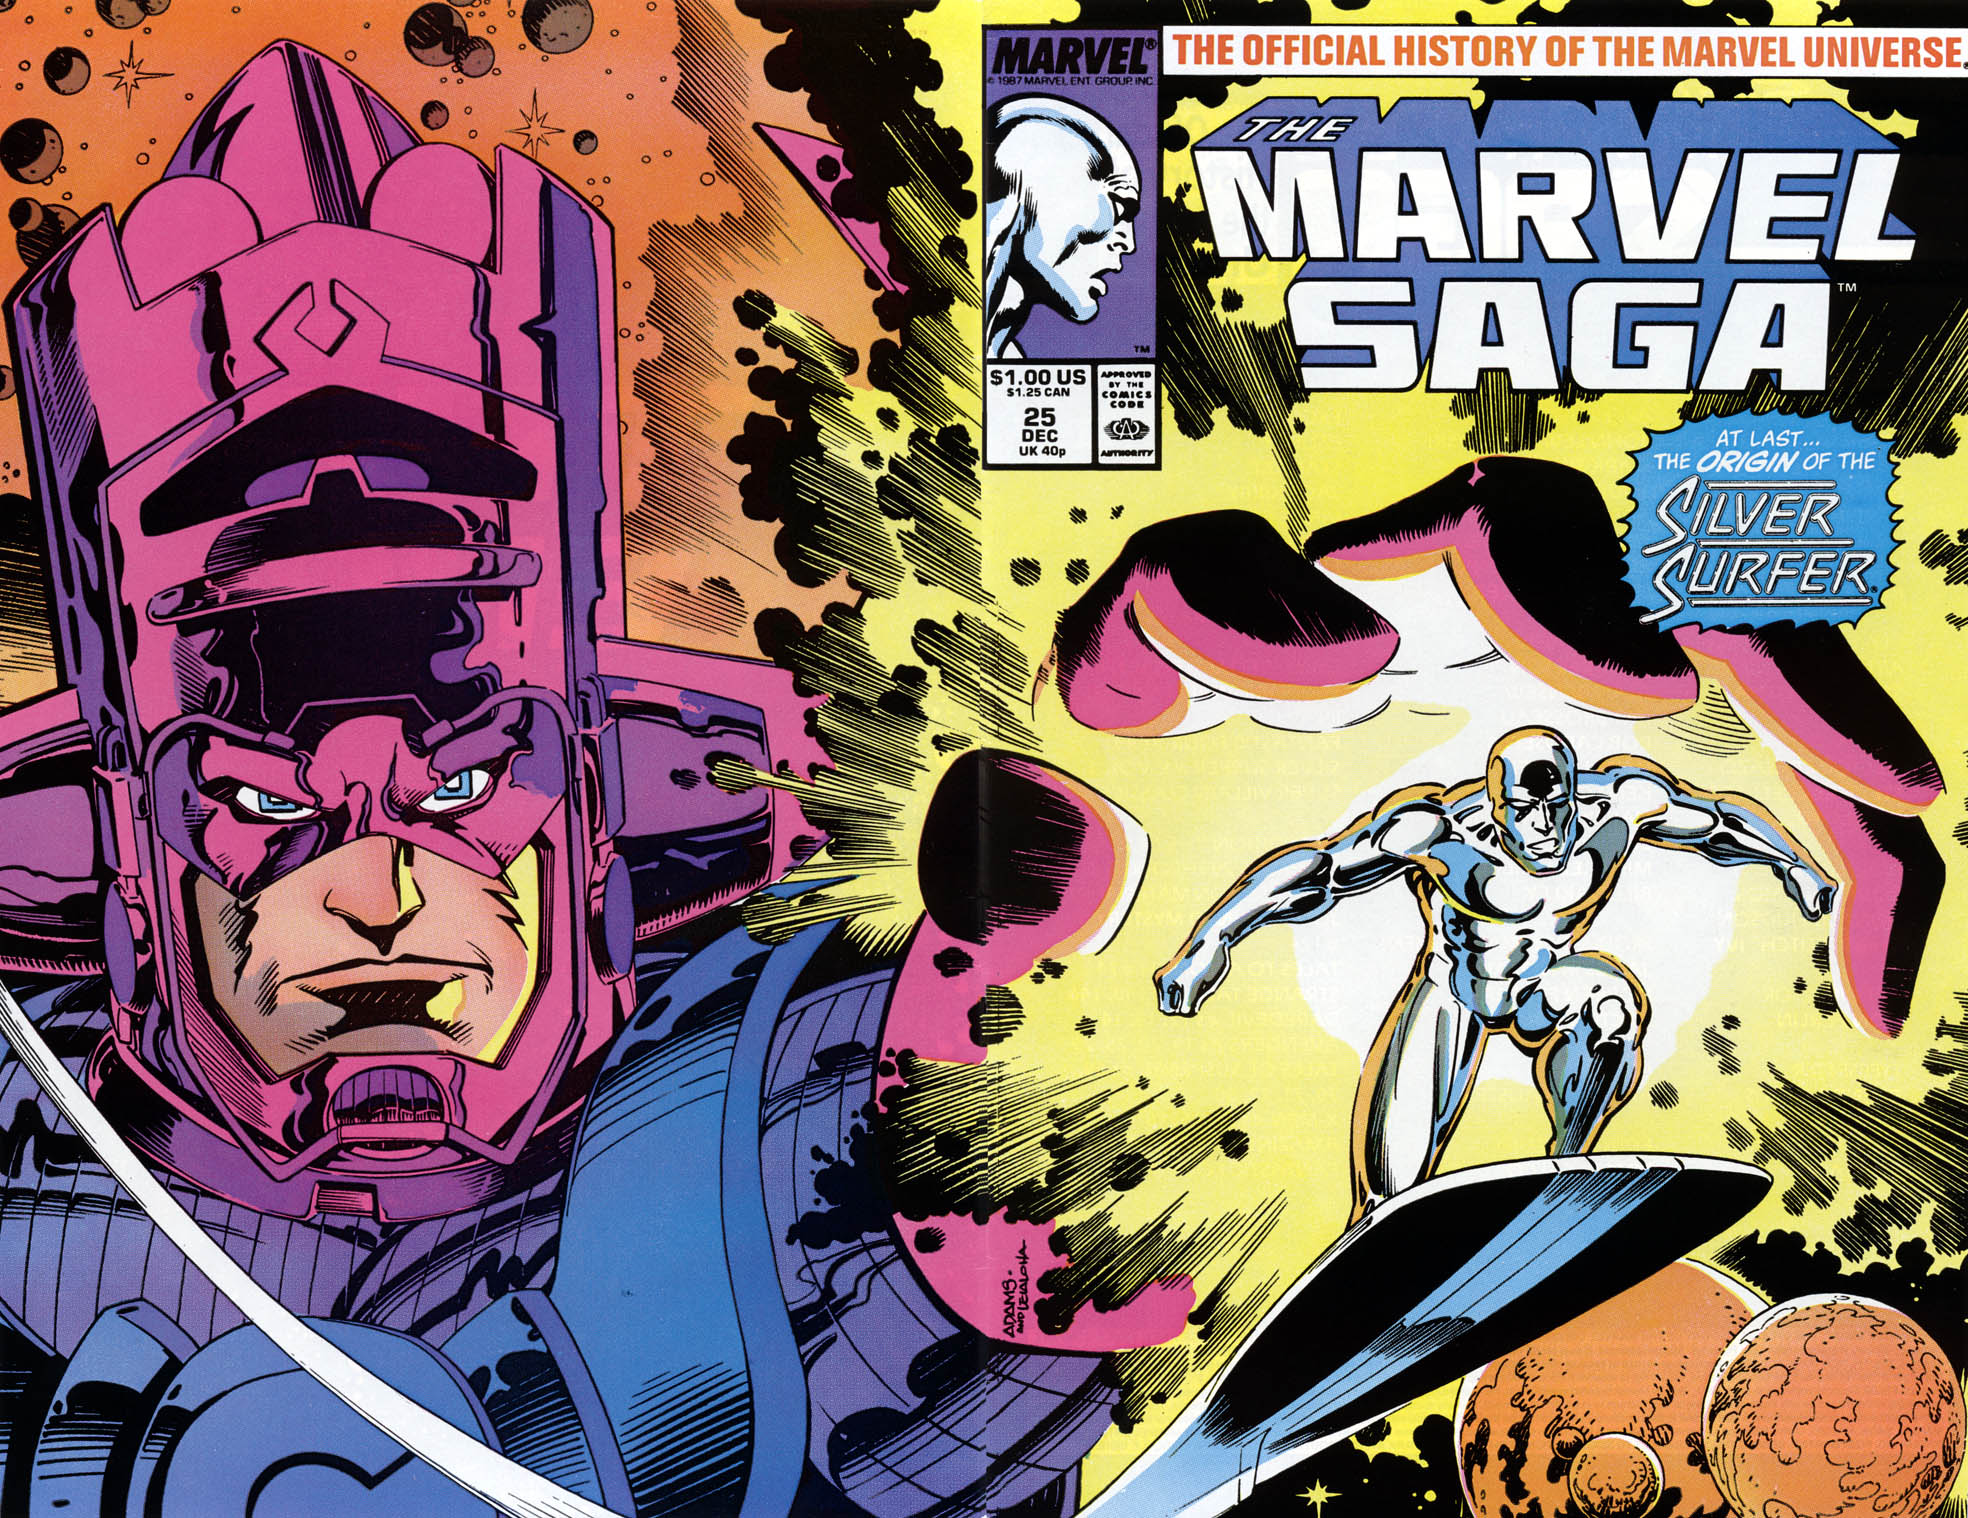 Marvel Saga: The Official History of the Marvel Universe 25 Page 1